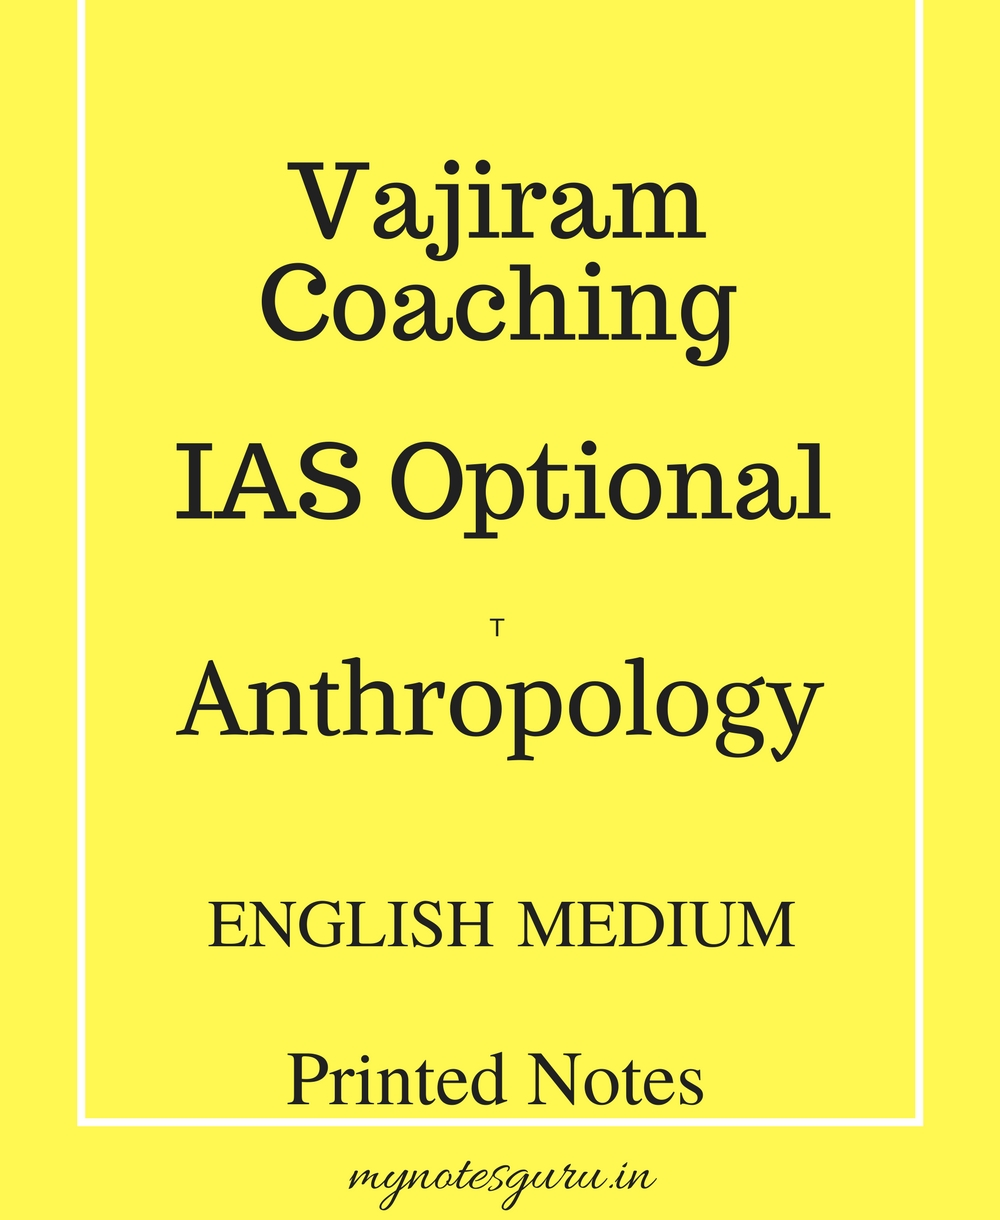 Vajiram Coaching - Anthropology Optional - Printed Notes - English Medium